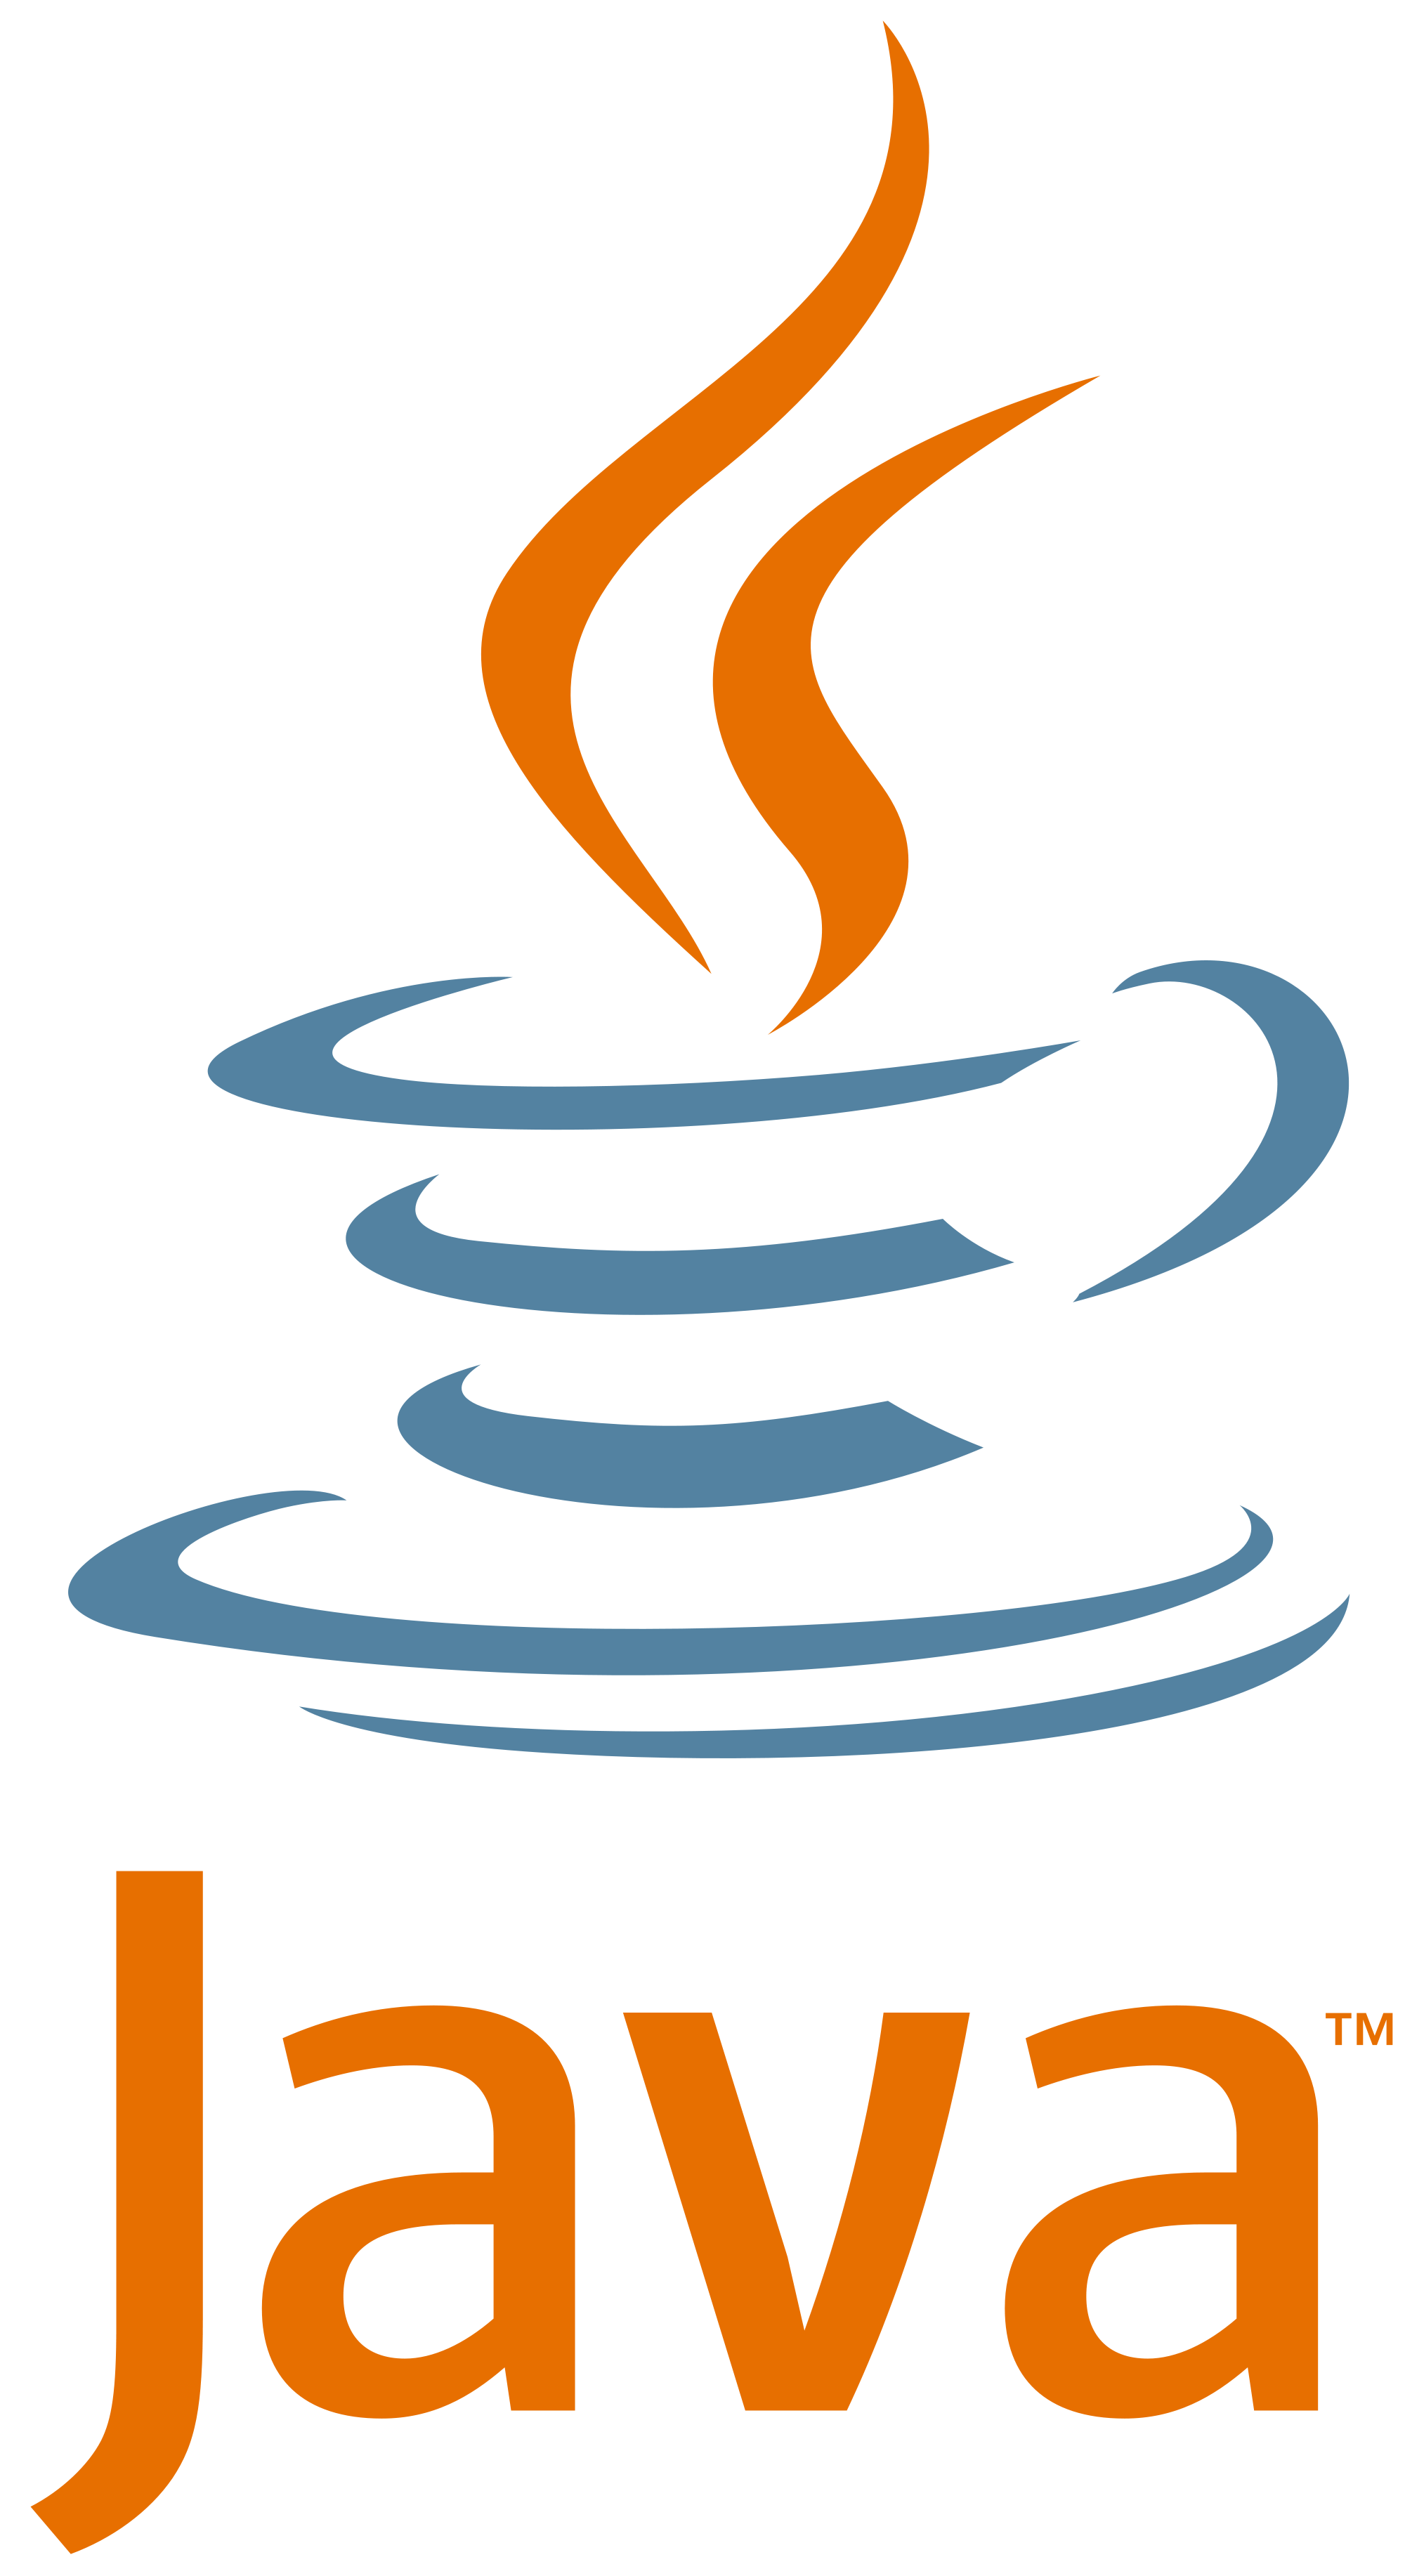 Download Java Png Clipart HQ PNG Image in different.